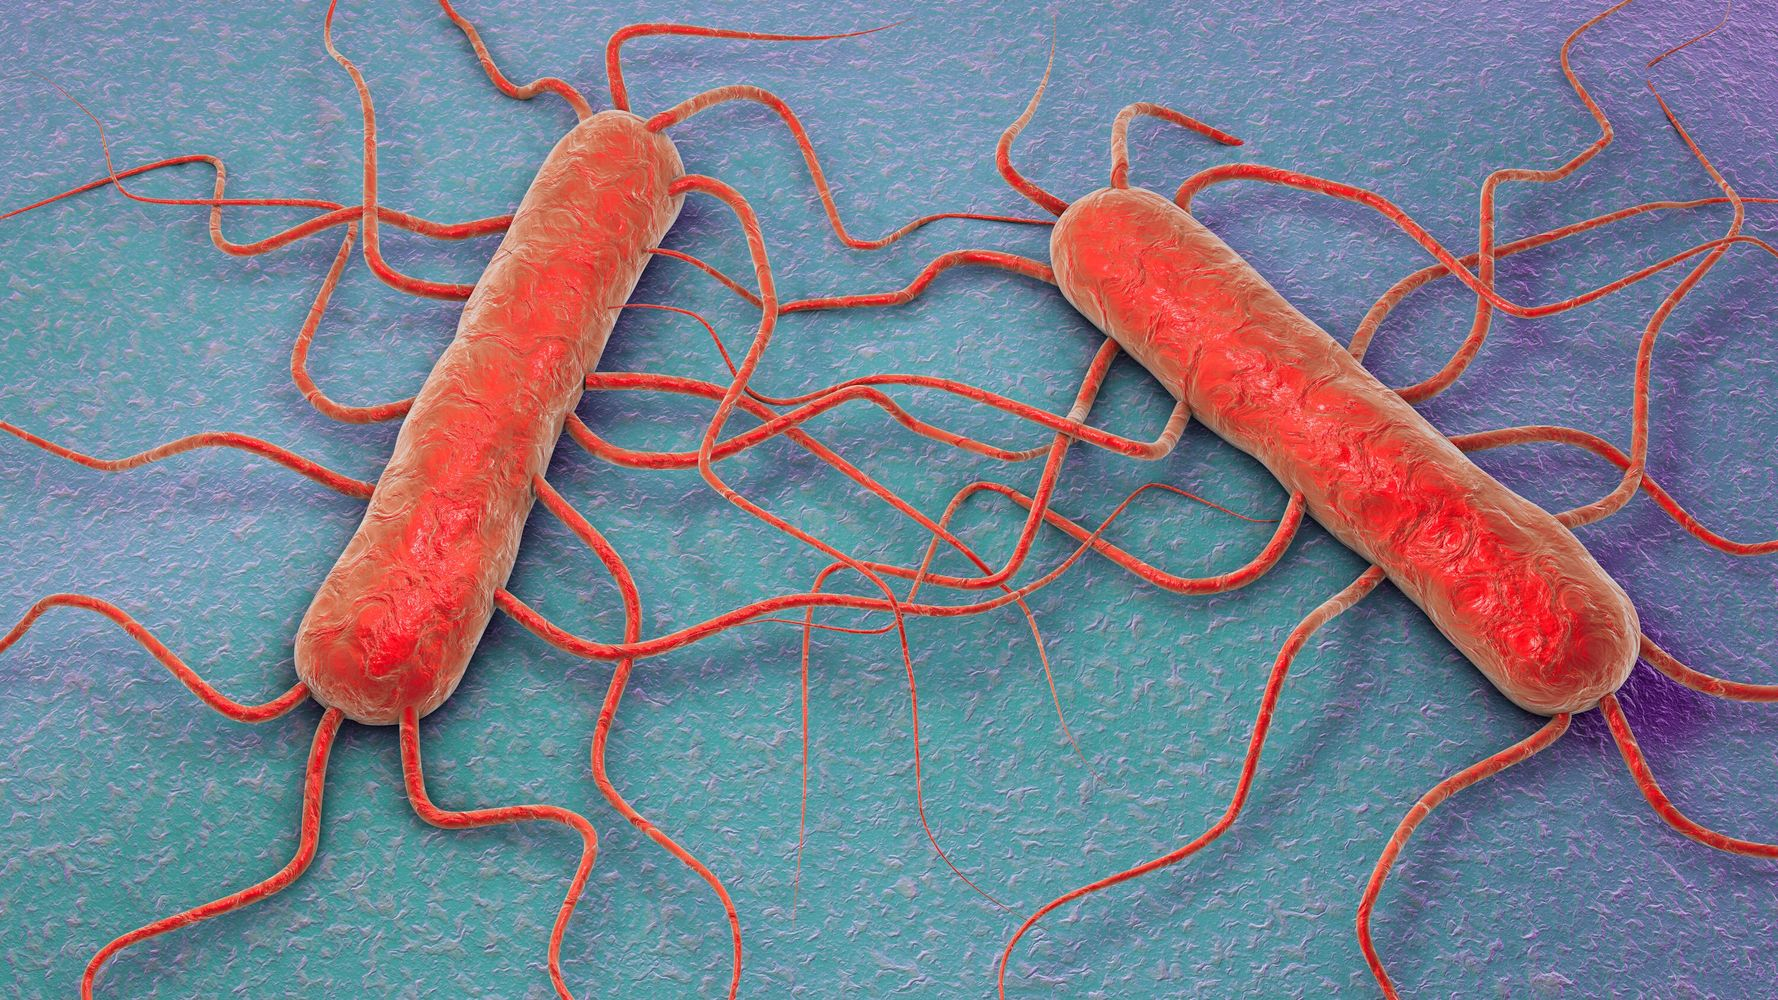 Listeria Symptoms: What You Should Know About The Foodborne Pathogen